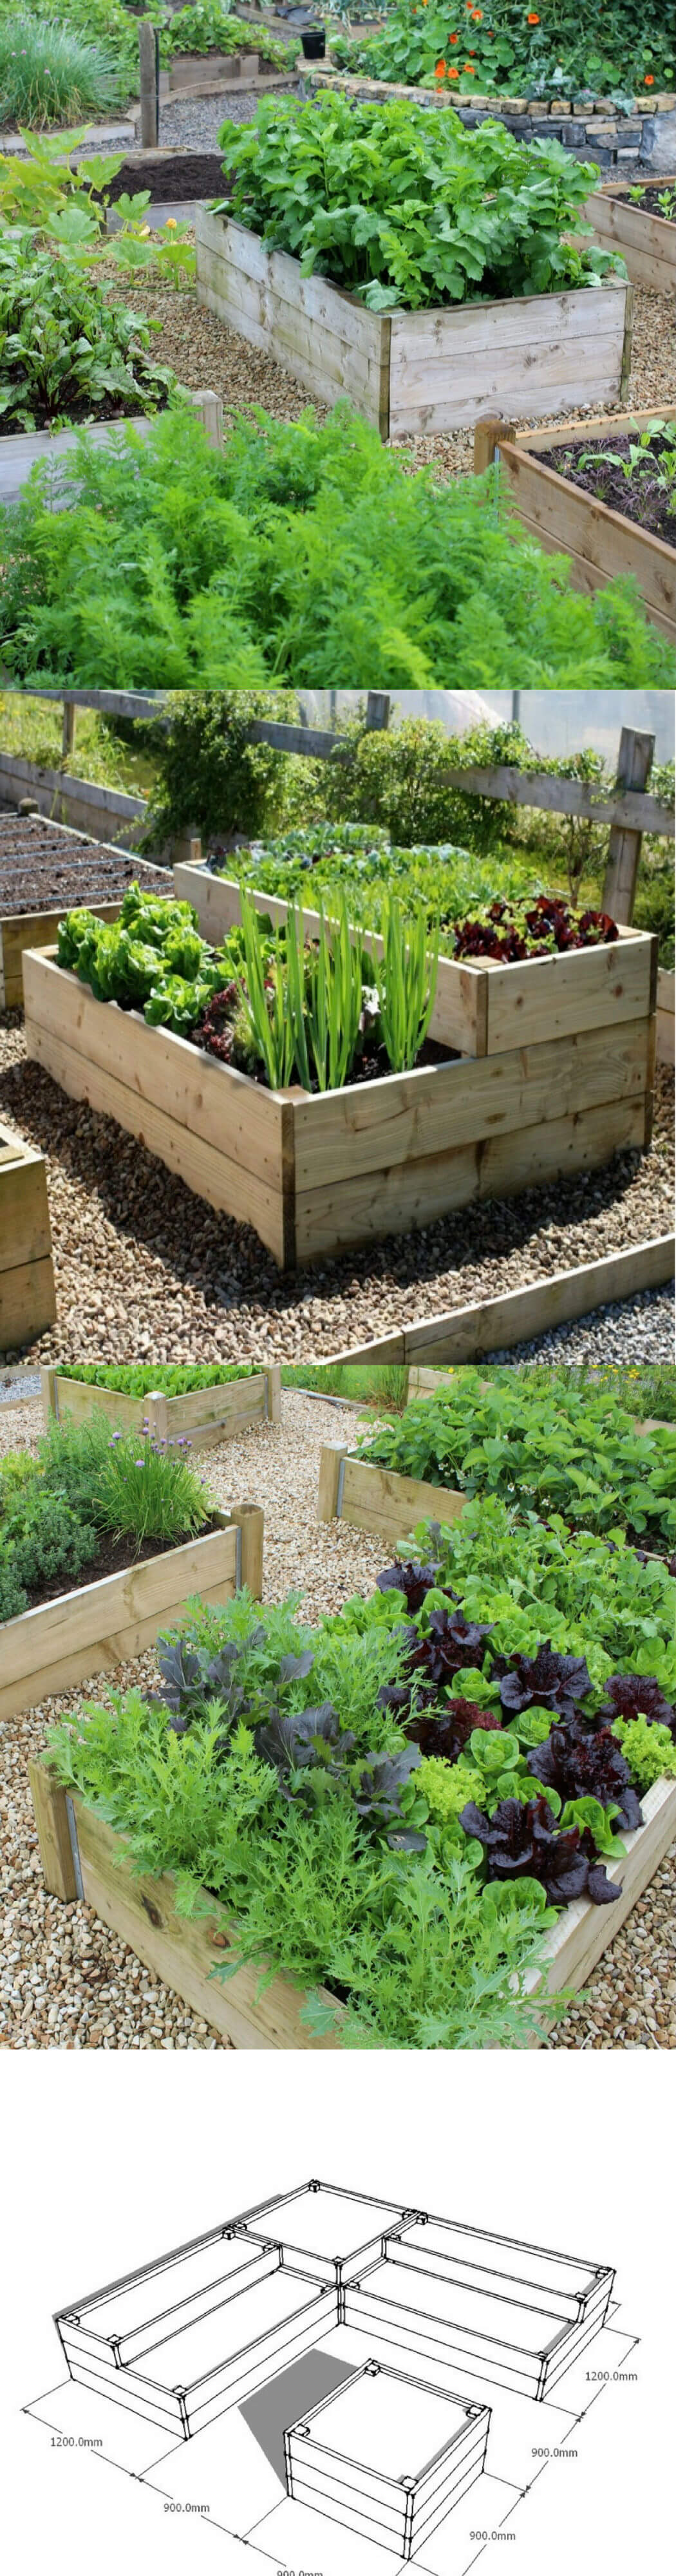 Timber Raised Bed | How to Build a Raised Vegetable Garden Bed | 39+ Simple & Cheap Raised Vegetable Garden Bed Ideas - farmfoodfamily.com